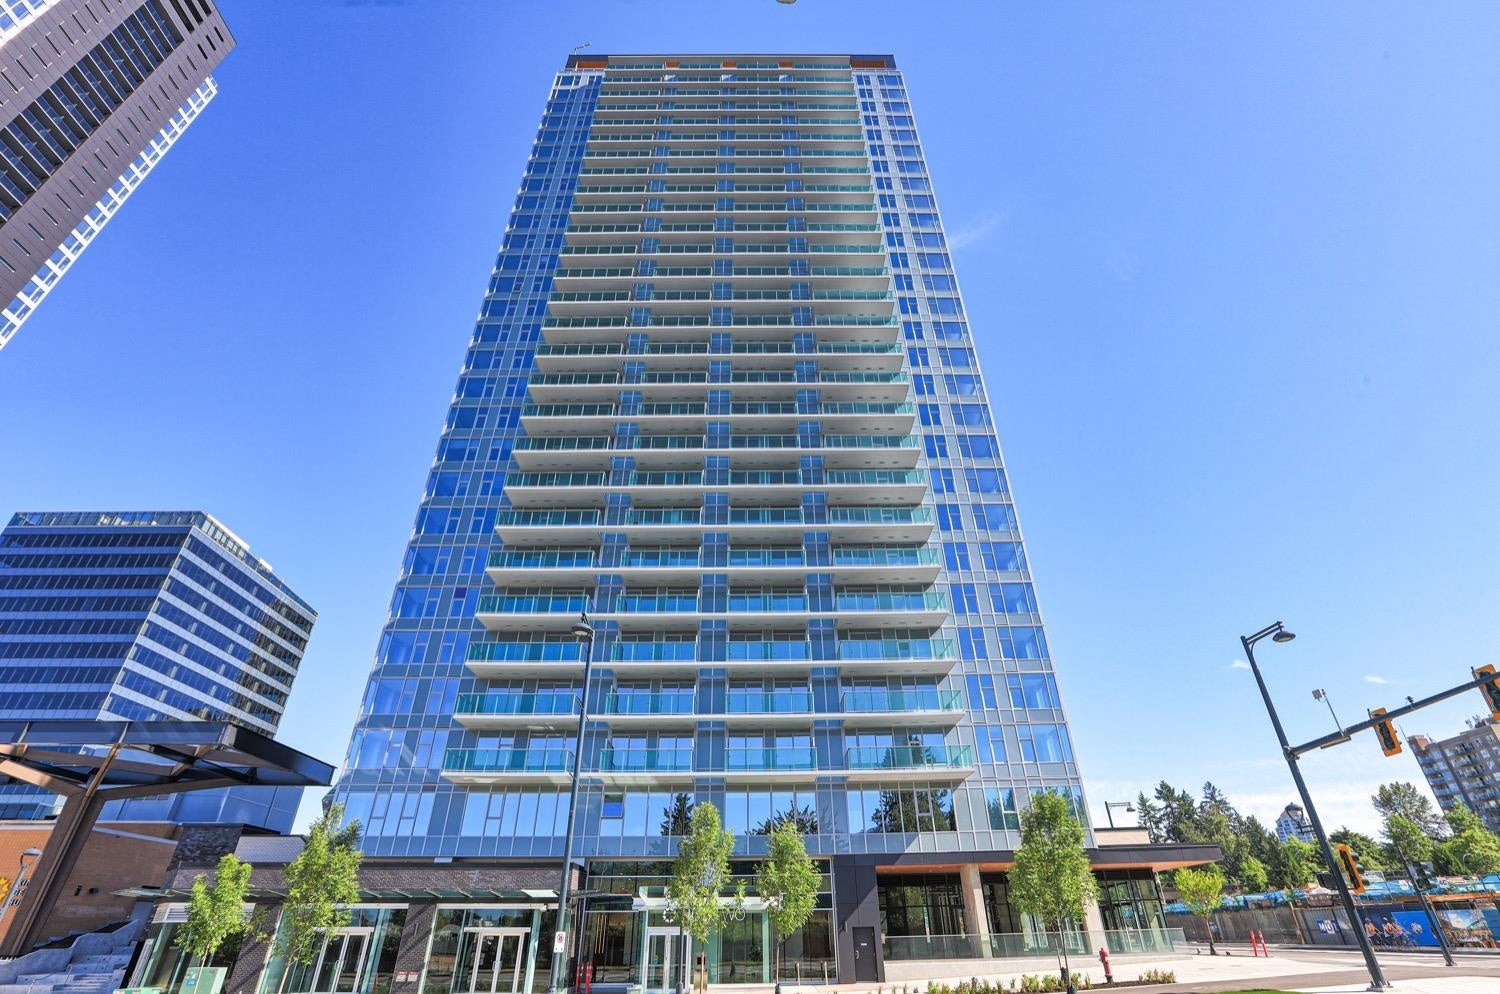 1009 13655 FRASER HIGHWAY - Whalley Apartment/Condo for sale, 2 Bedrooms (R2625403)